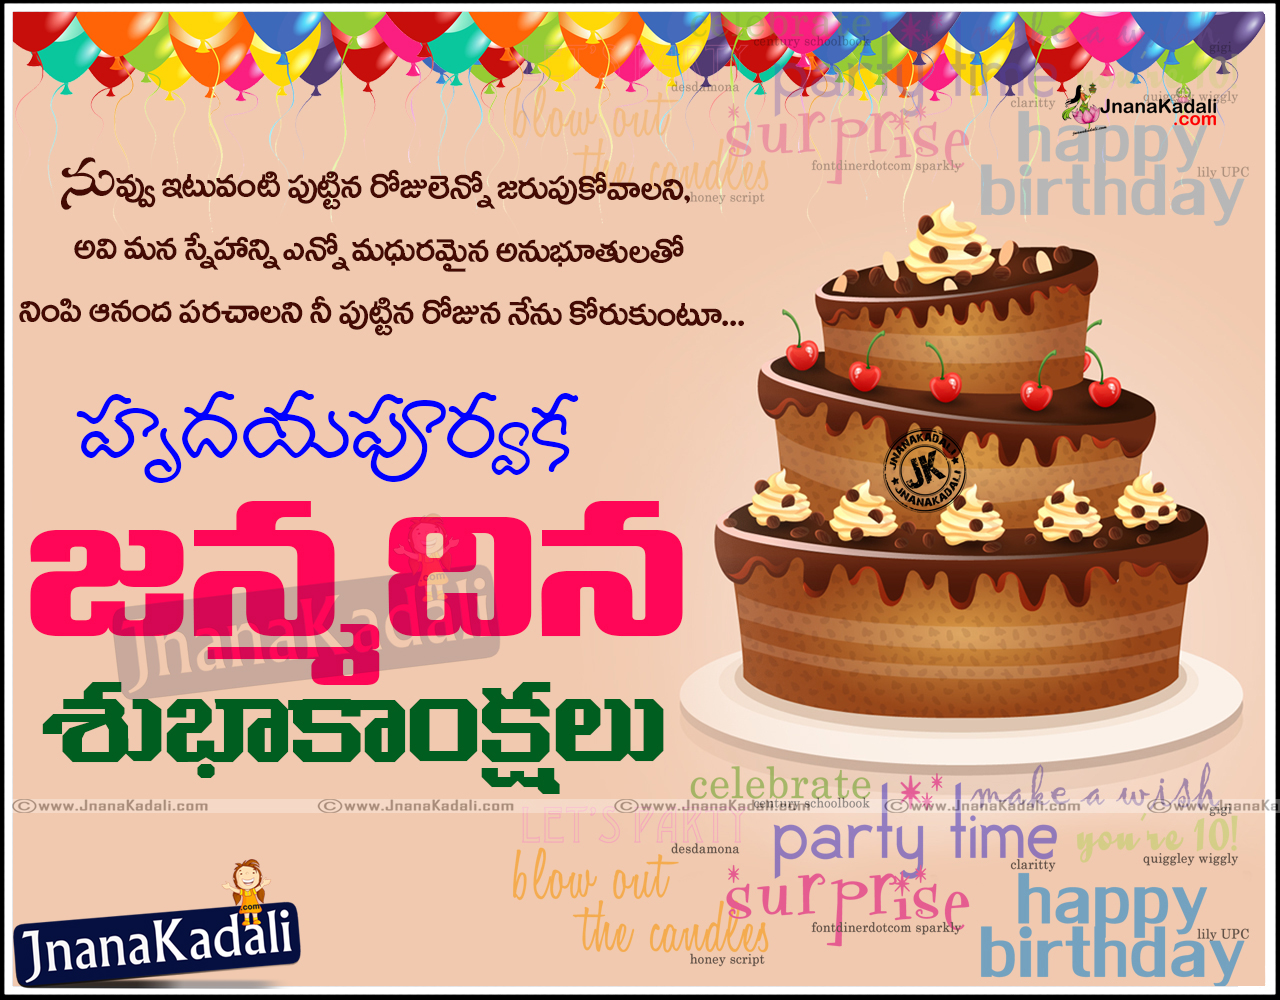 Birthday quotes for best friend in telugu best friend birthday quotes and wishes gifts greetings kristyandbryce Gallery